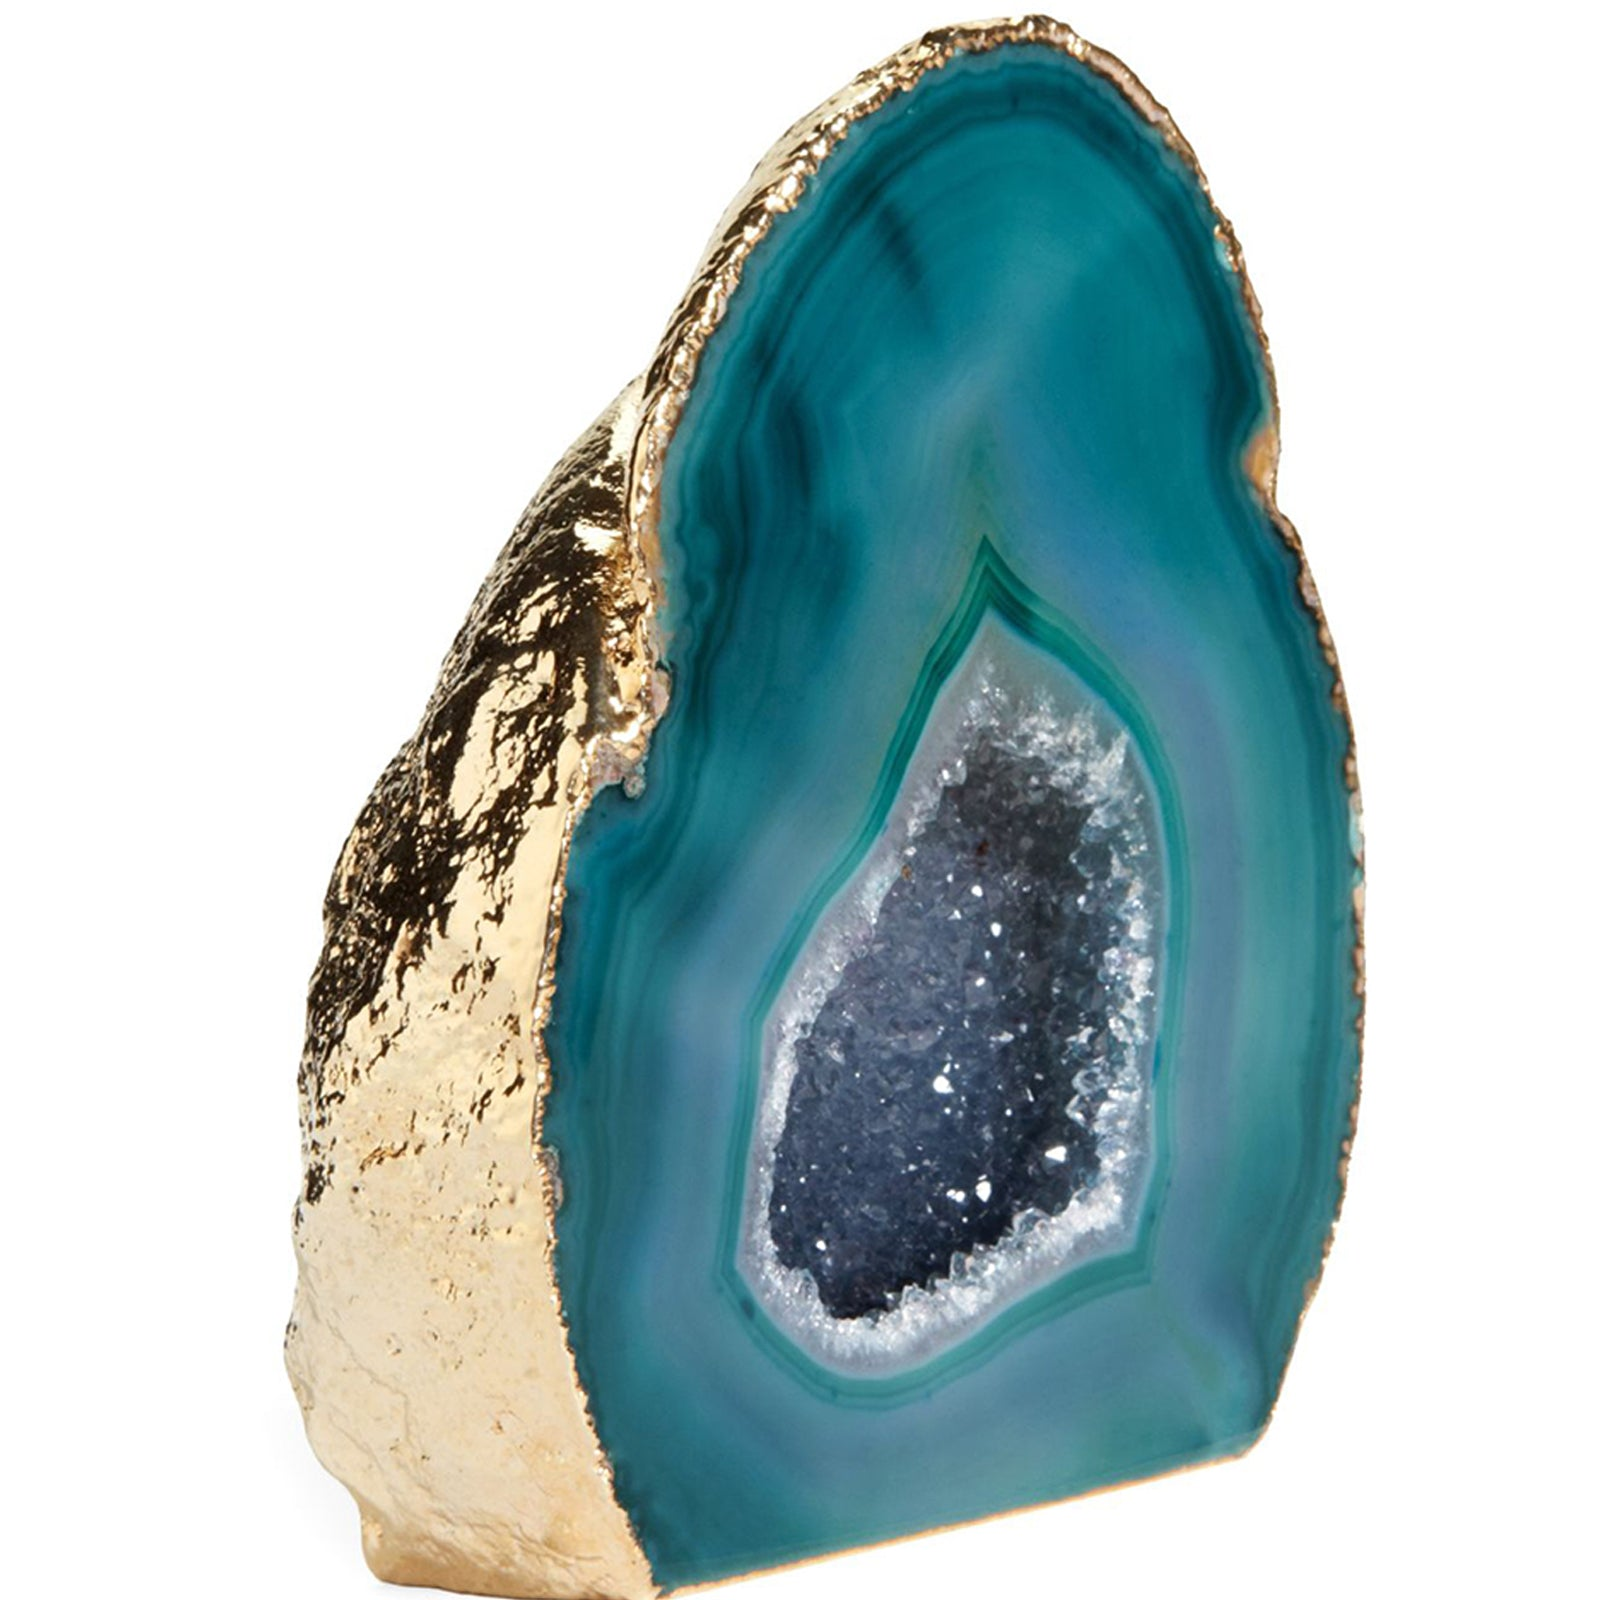 Agate Geode Stone Ornament - Teal